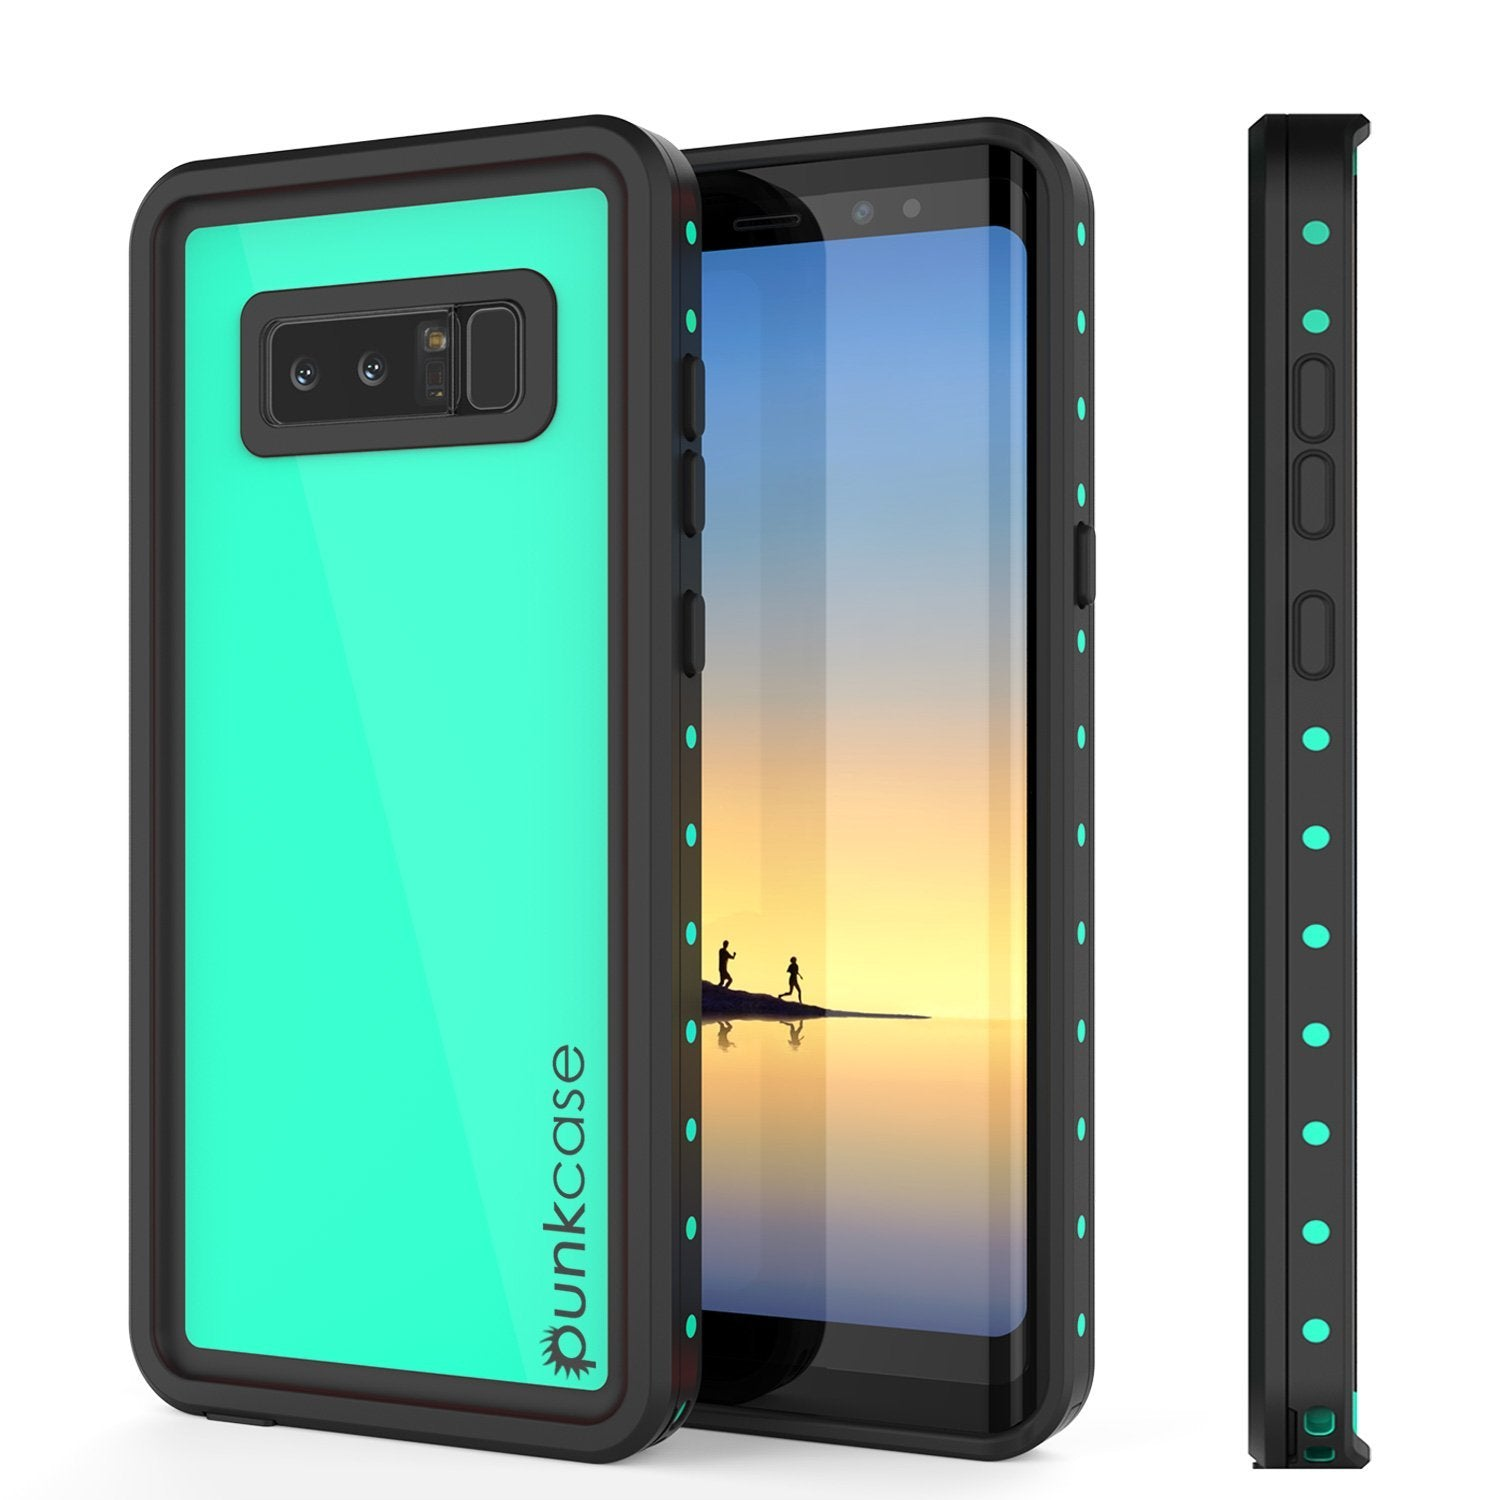 Galaxy Note 8 Punkcase Waterproof IP68 Shock/Snow Proof Case [Teal]